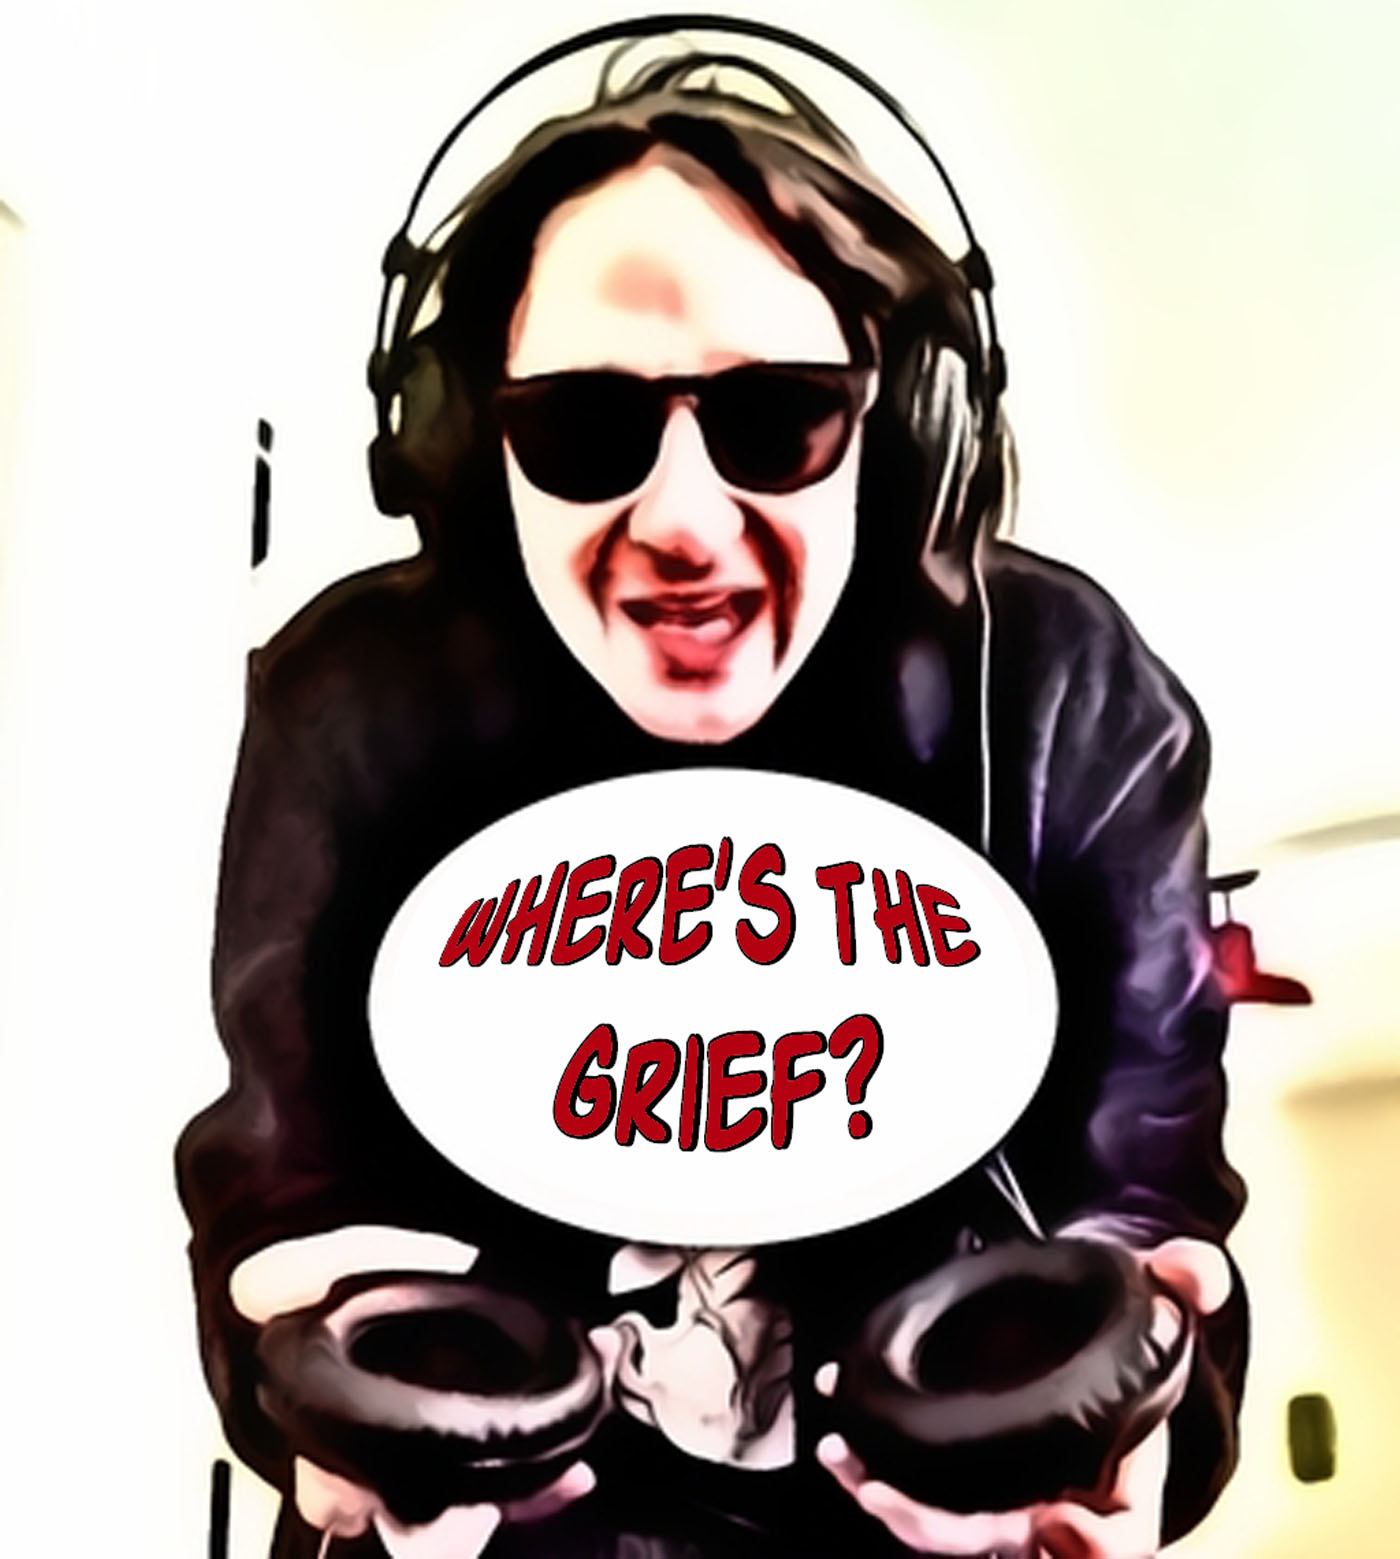 Where's The Grief? | Listen via Stitcher for Podcasts